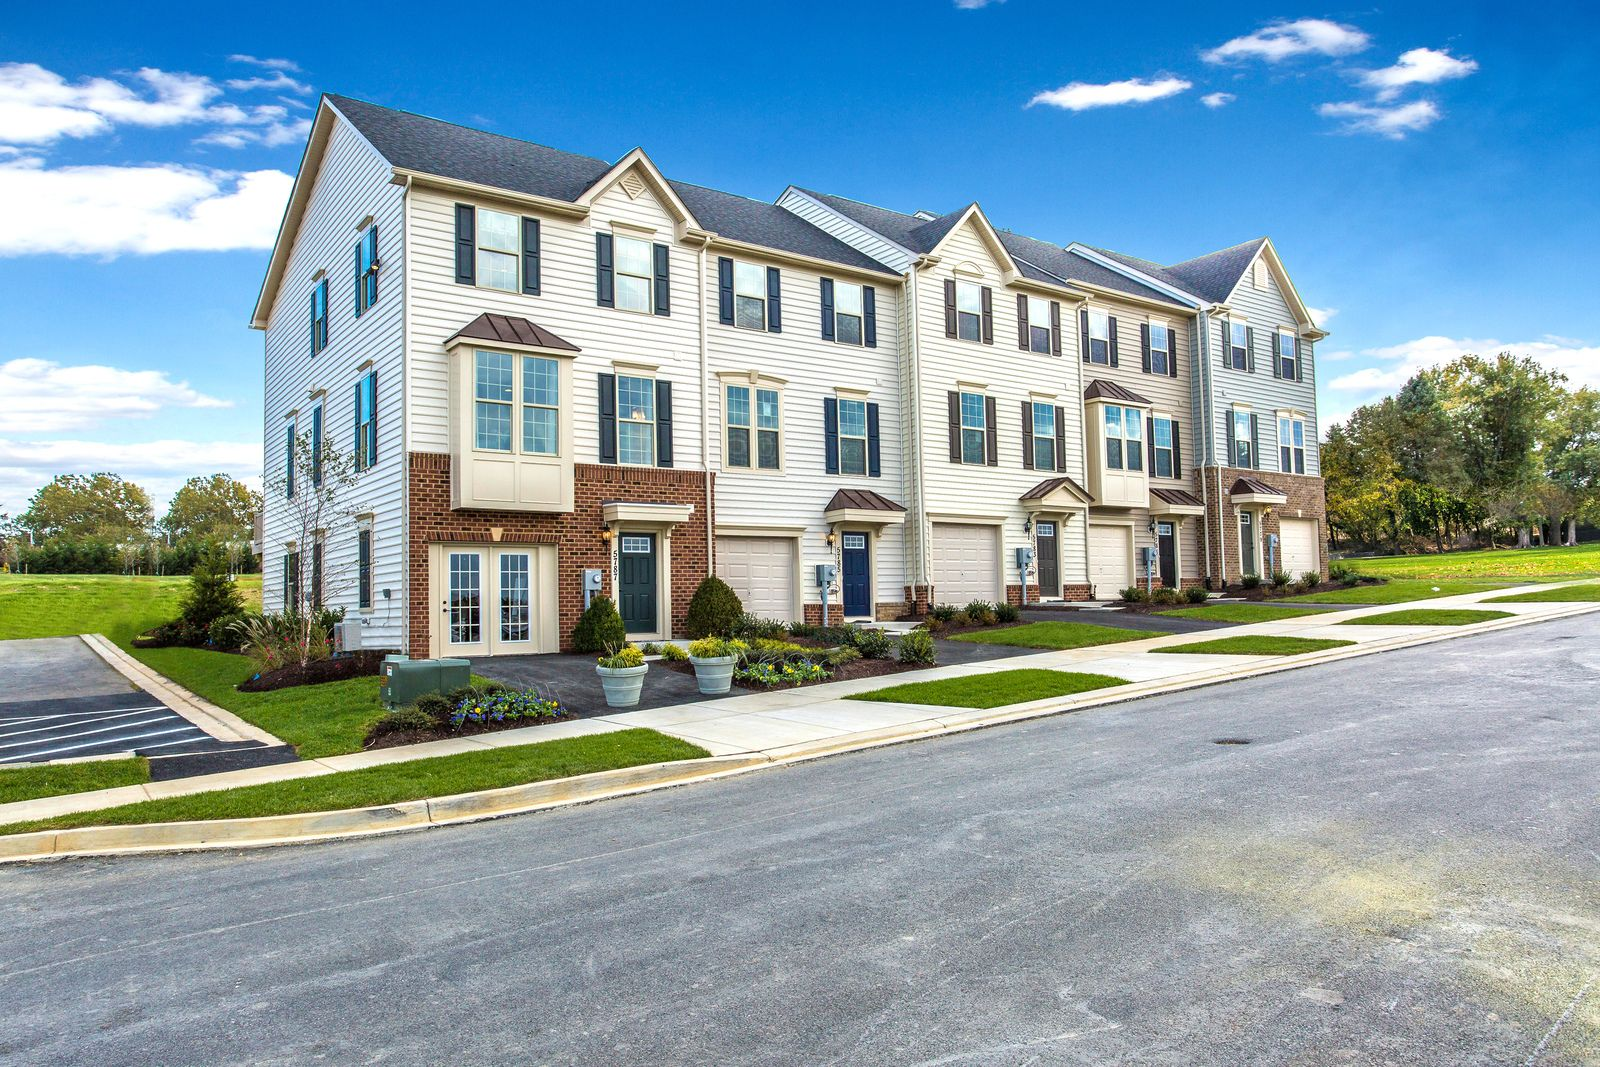 Welcome to Water Club Towns:Only new townhomes with established first-class amenities in Cinnaminson. 5 miles to Philly and 1/8 mile from the River LINE.Click here to schedule your visit. Photograph (1)